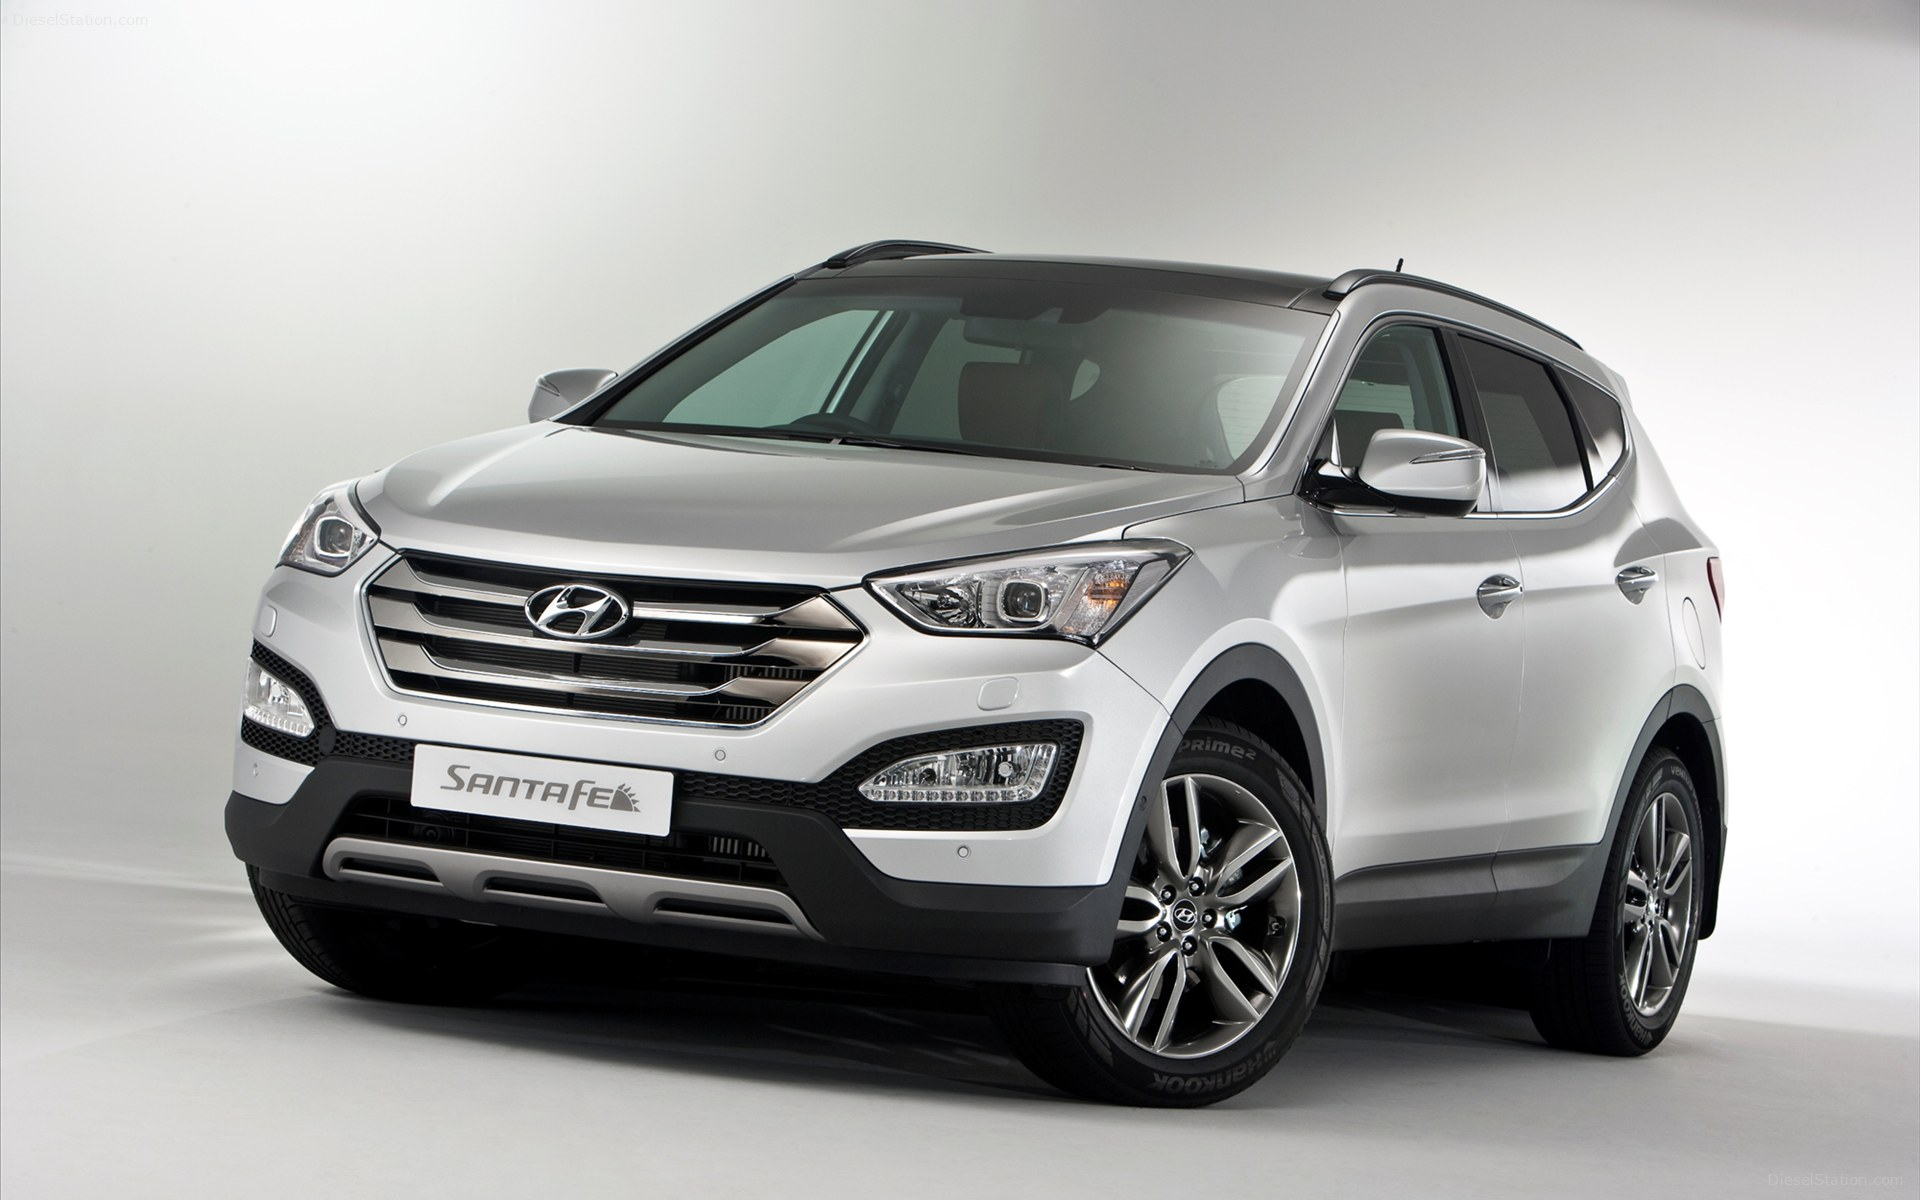 Hyundai Santa Fe Review Hyundai Cars Private Fleet